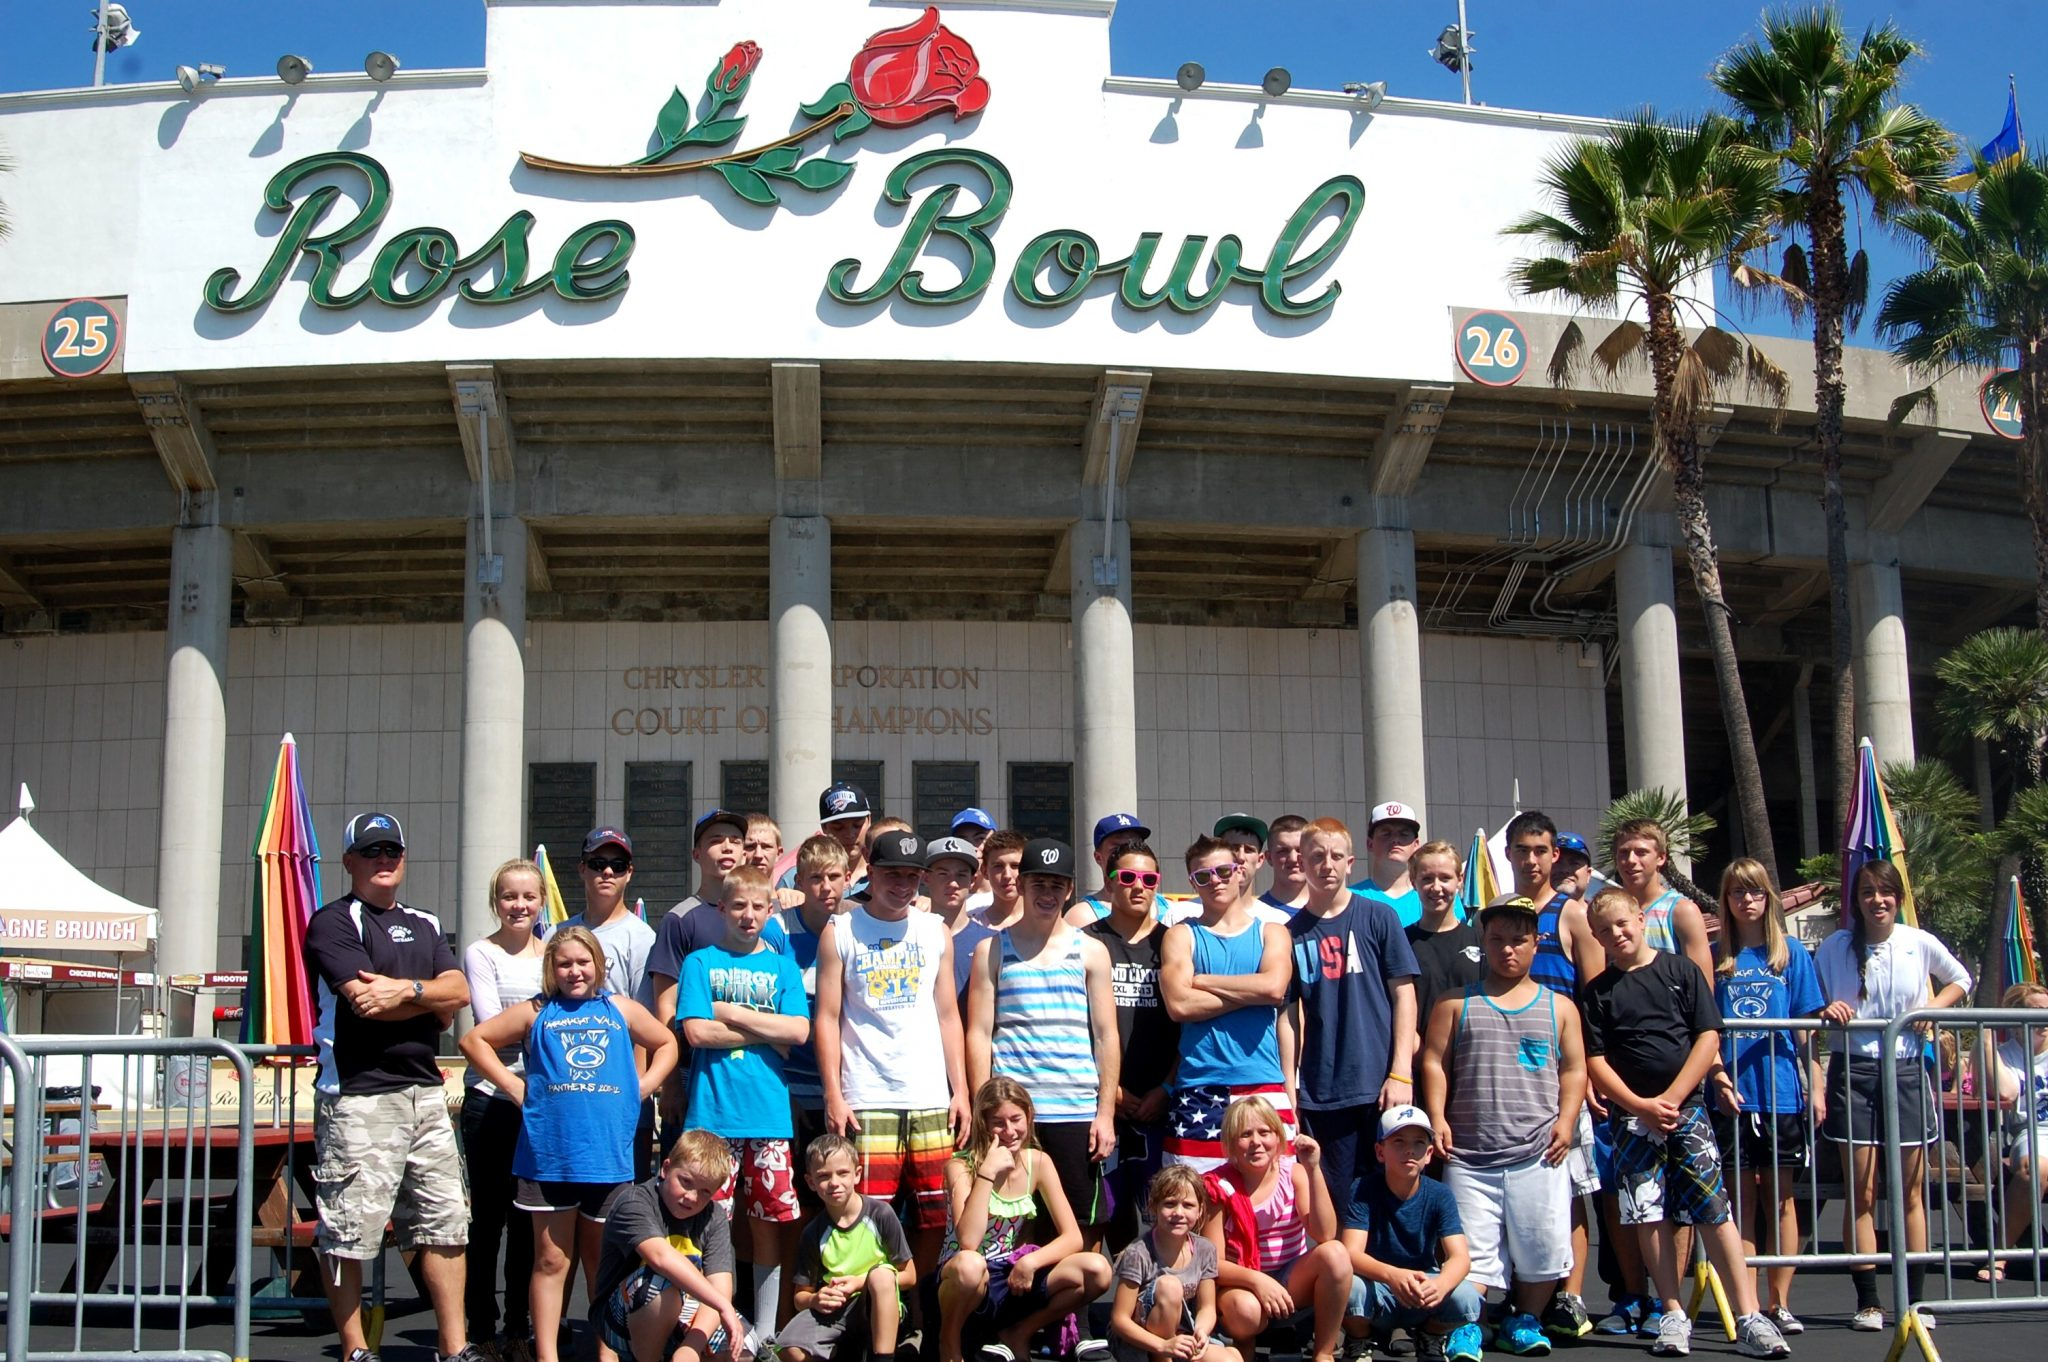 Panther football team visits historic Rose Bowl